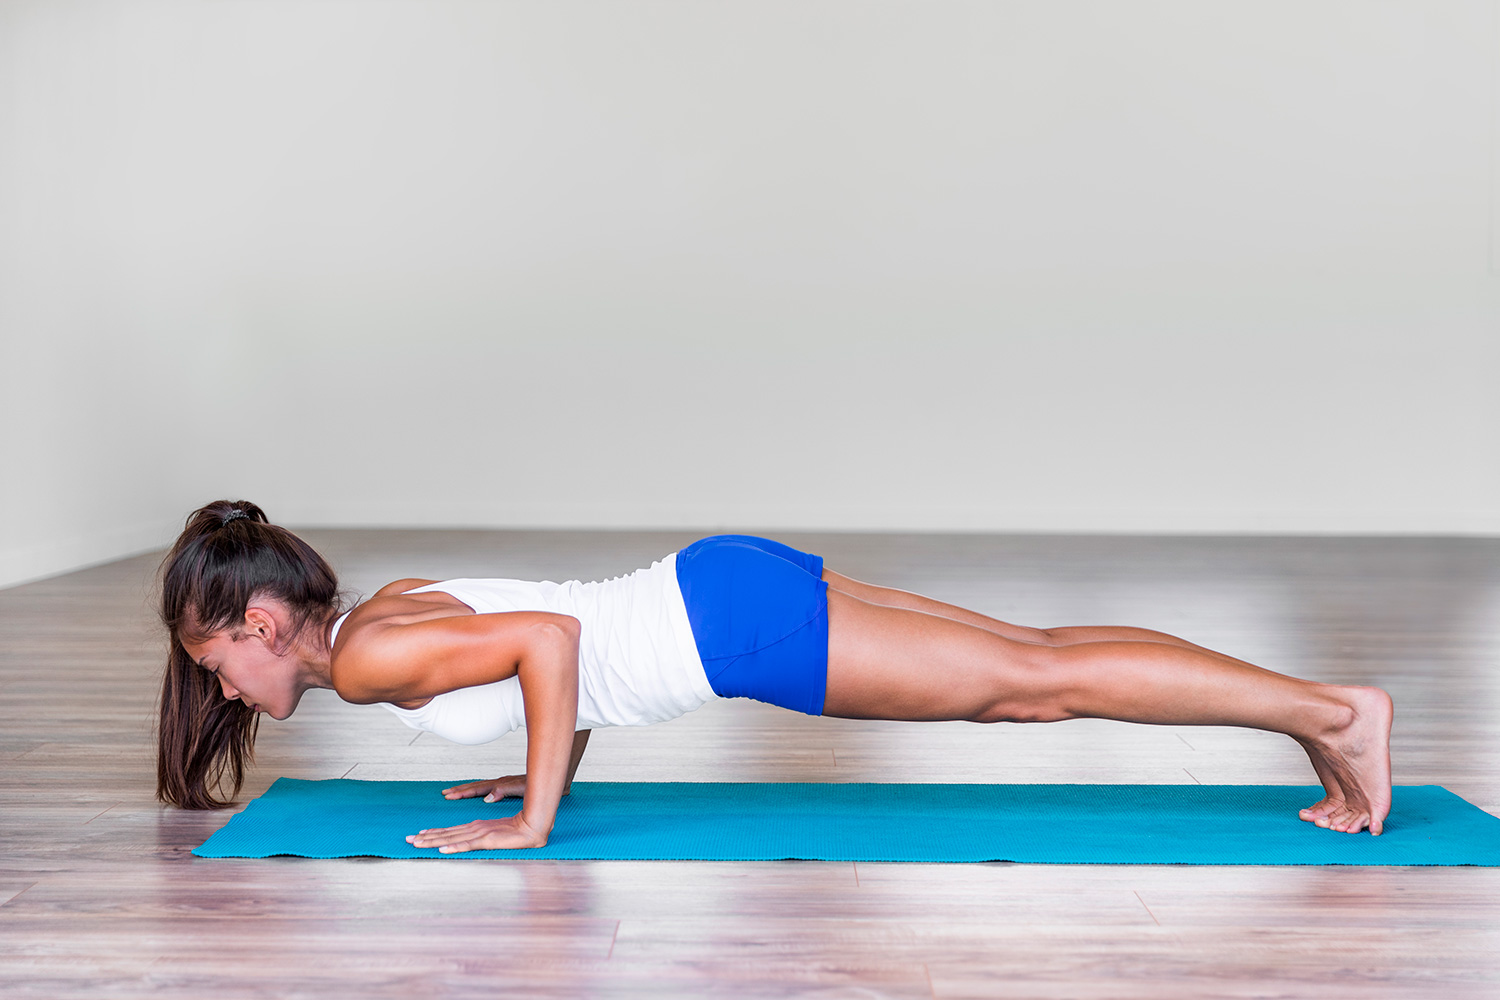 How to Do Low Plank (Chaturanga Dandasana) in Yoga